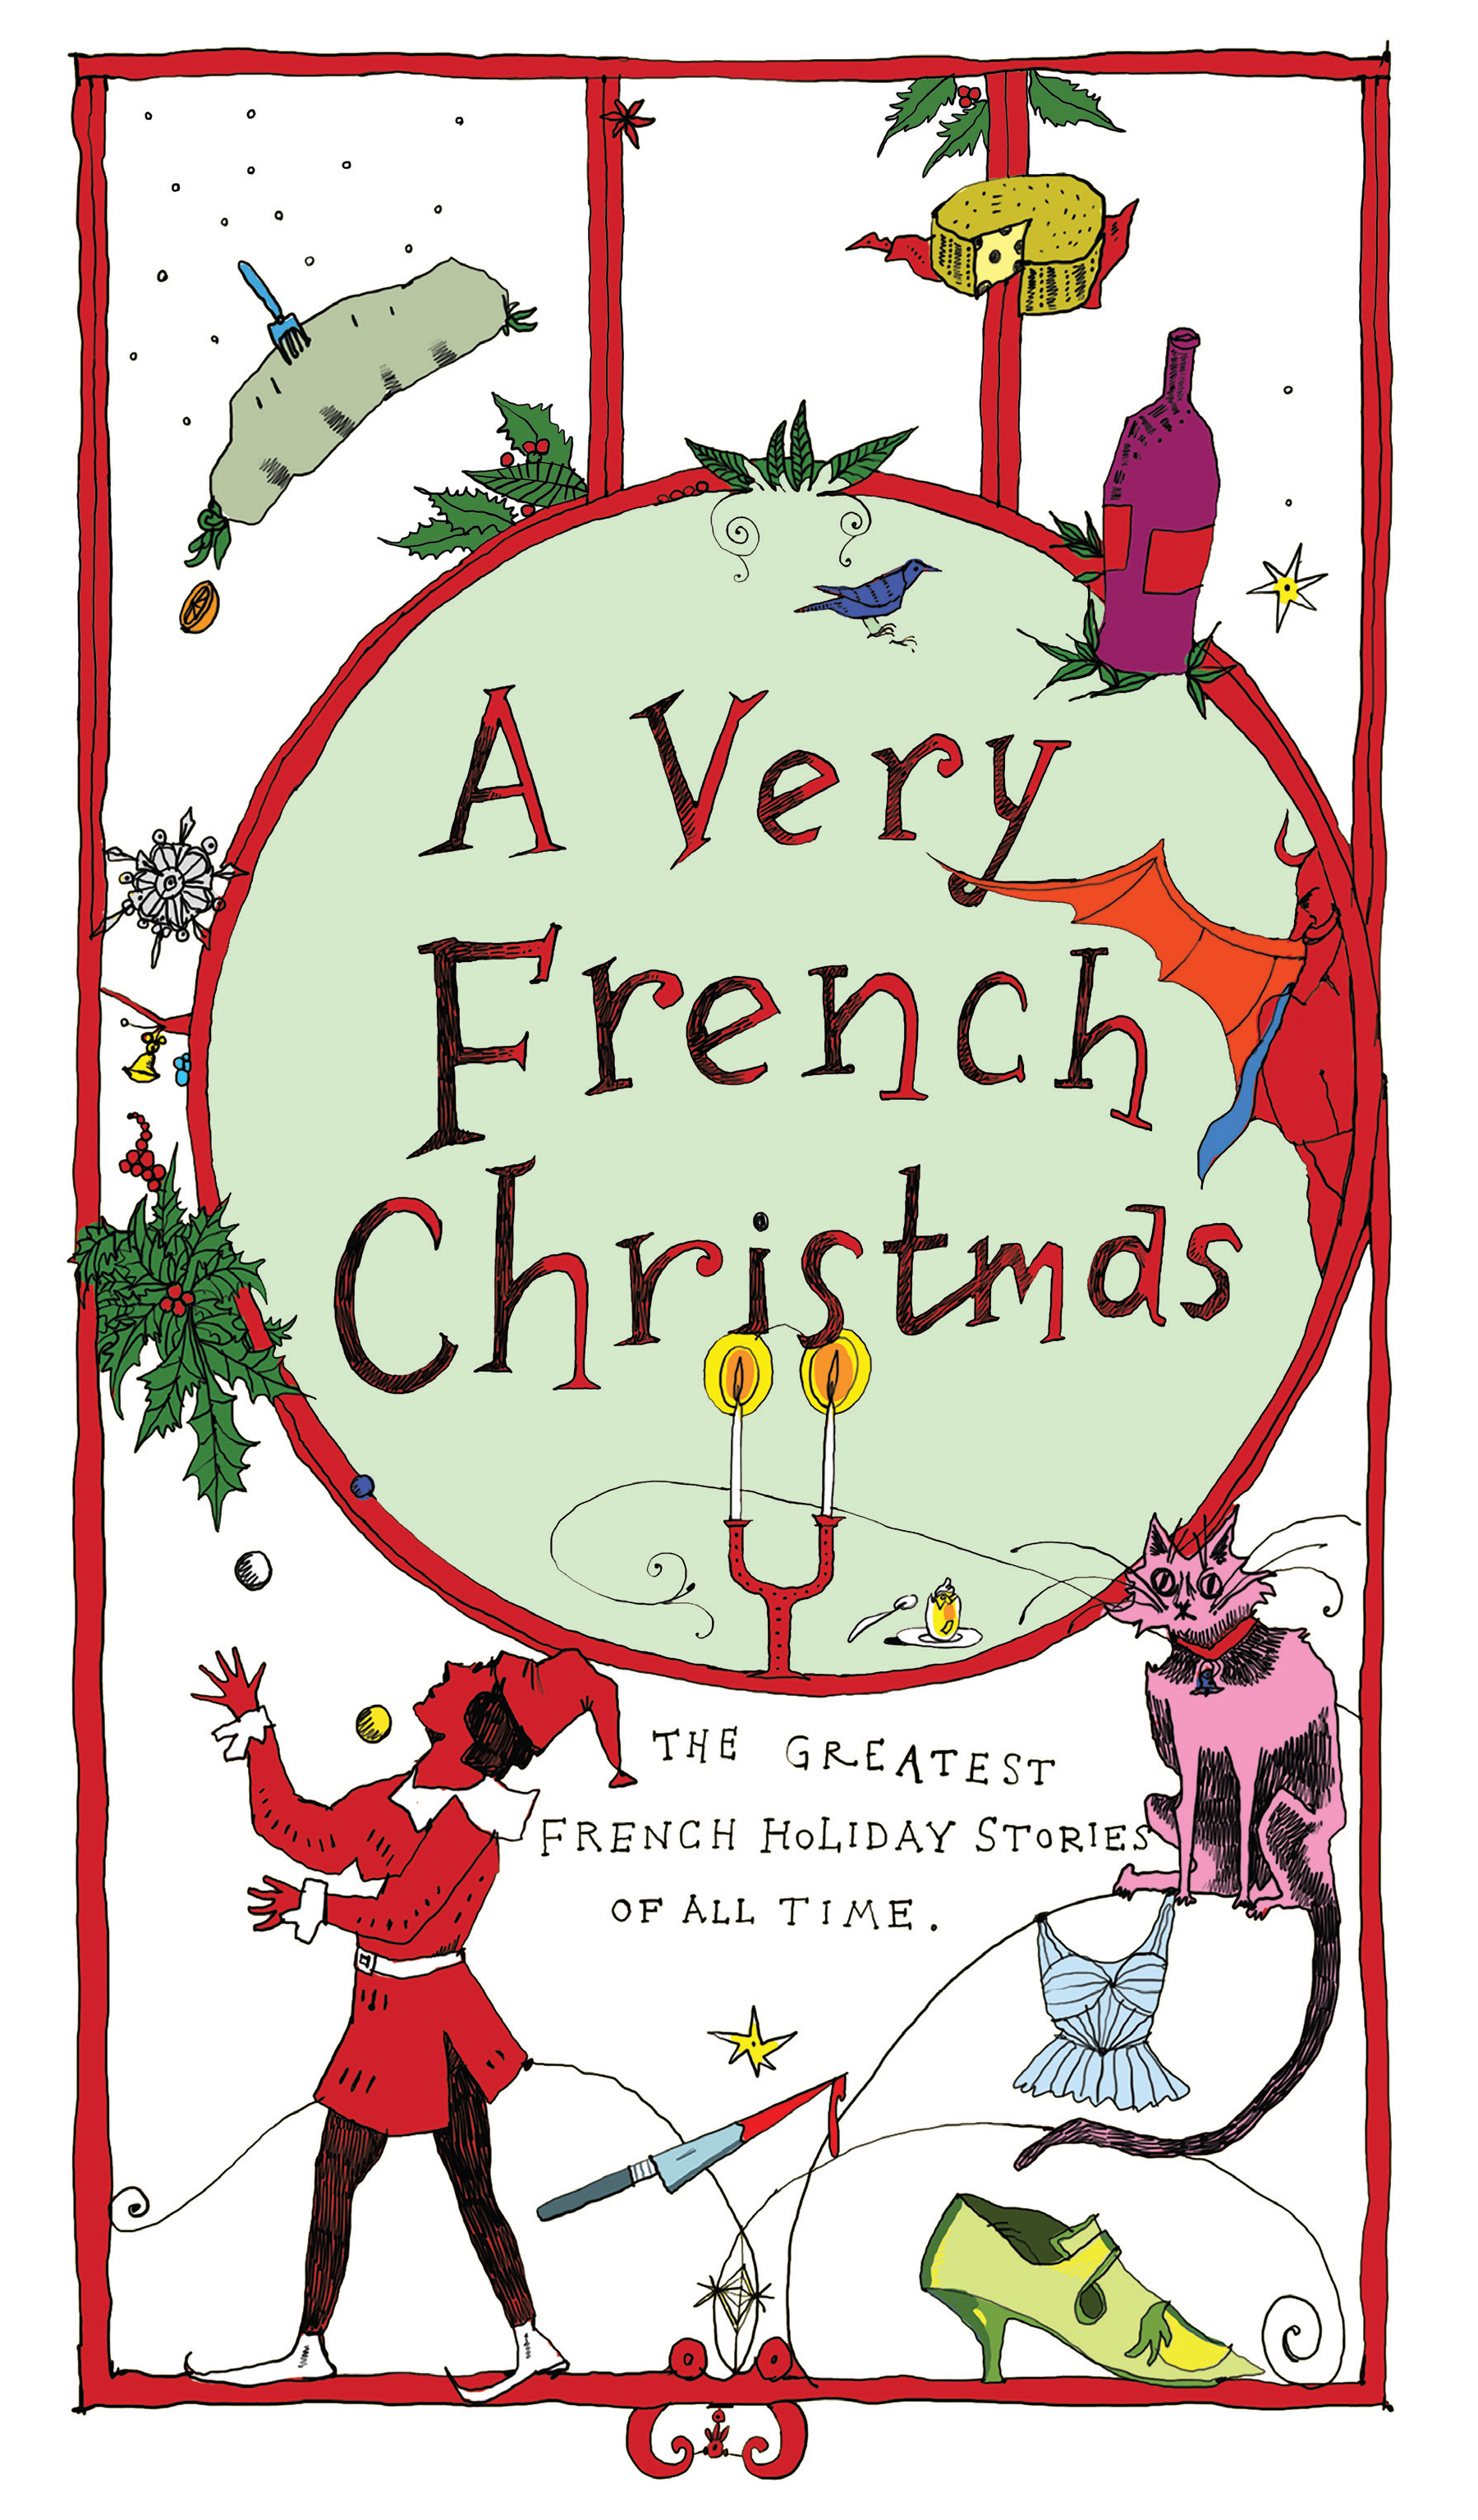 Very French Christmas